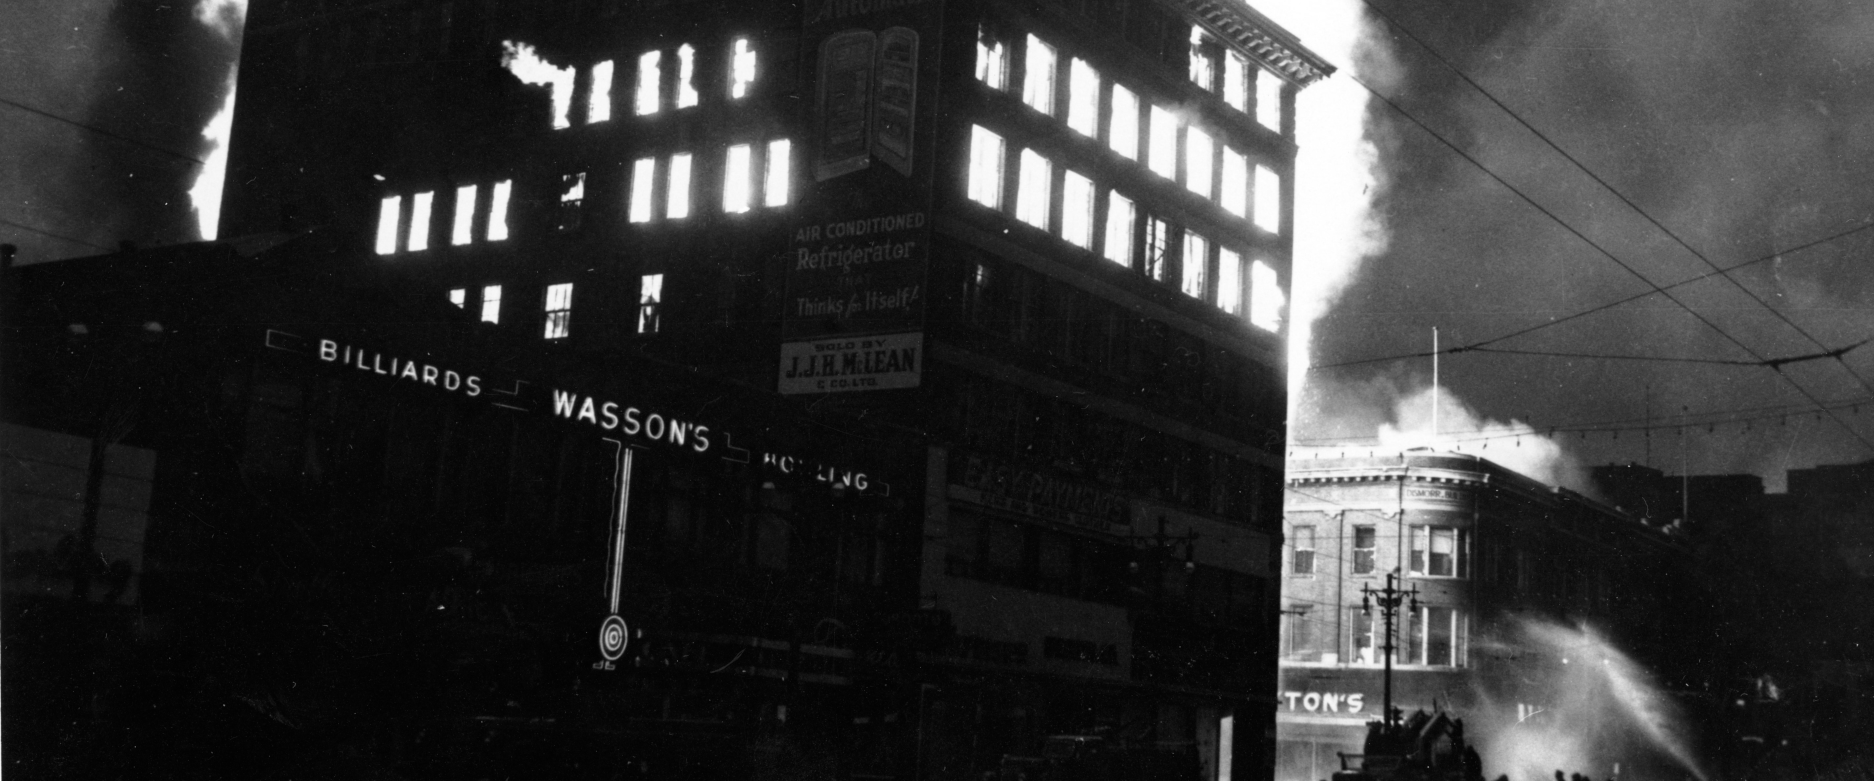 Royal Winnipeg Ballet Archives. The Times Building at the corner of Hargrave and Portage in Winnipeg,  during the early stages of a fire which destroyed the building and others around it, including the RWB headquarters. All the ballet records were also destroyed. Photograph by Jack Ablett, June 8, 1954.